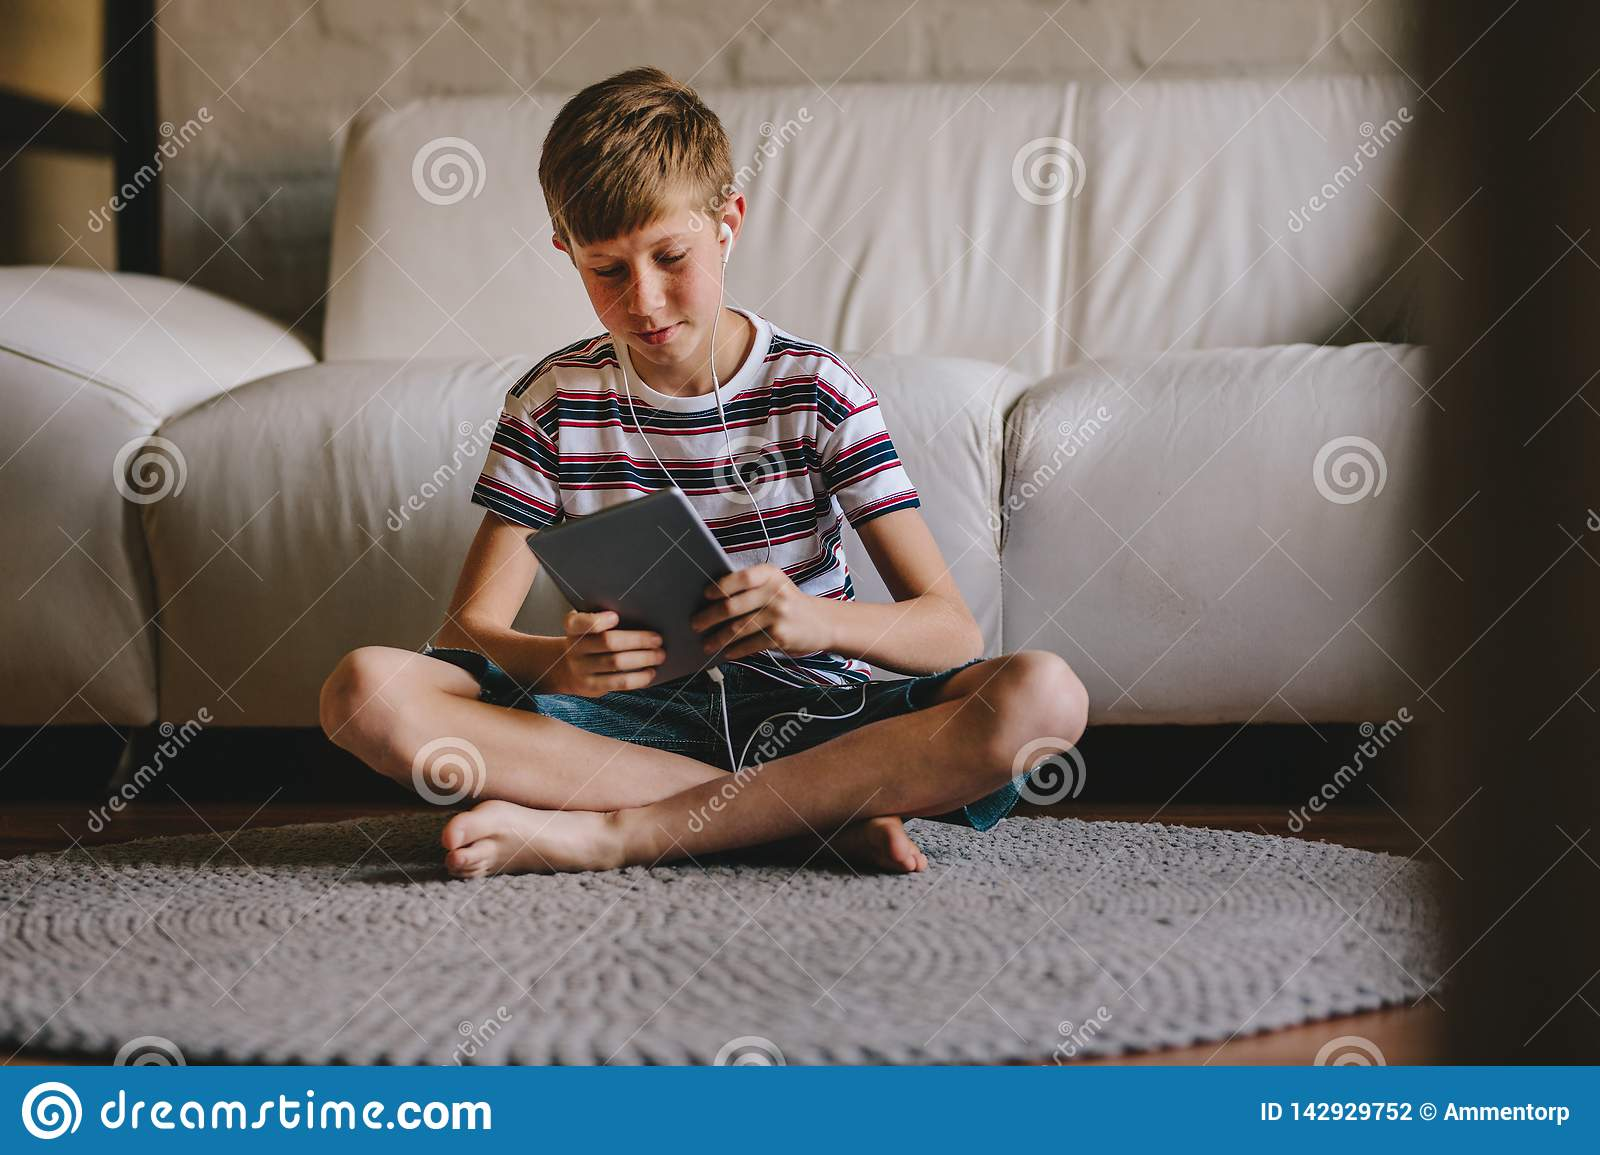 Boy playing online game on tablet at home